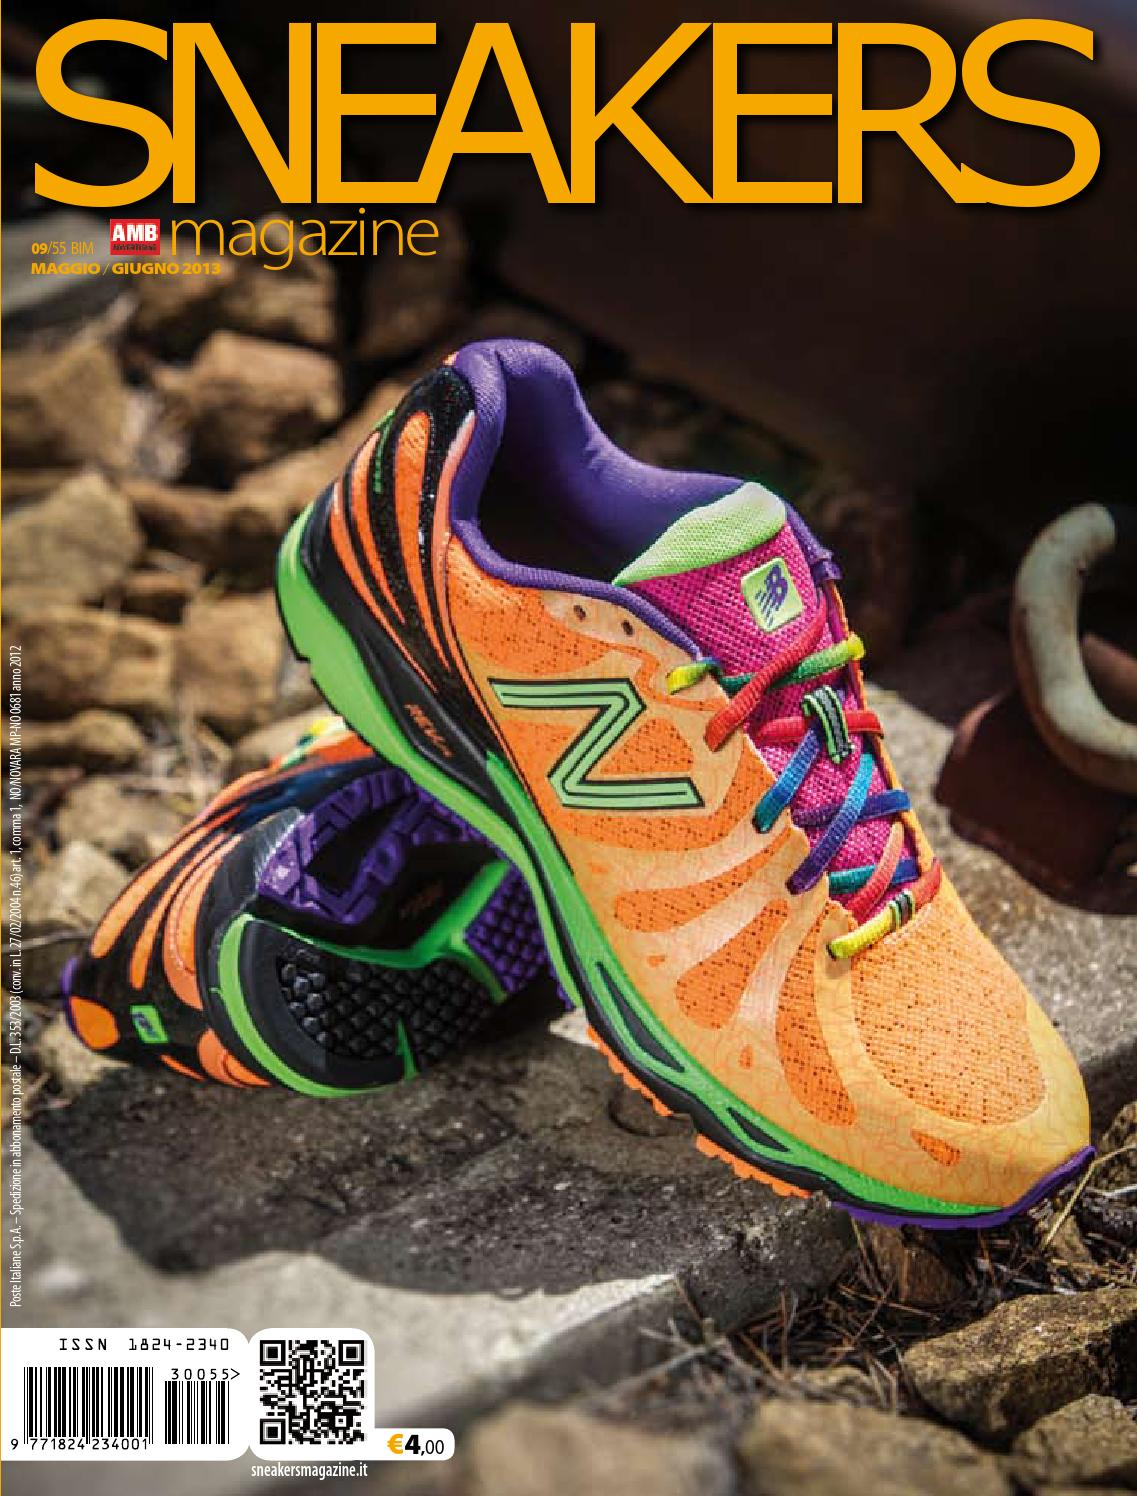 SNEAKERS magazine Issue 55 by Sneakers Magazine issuu